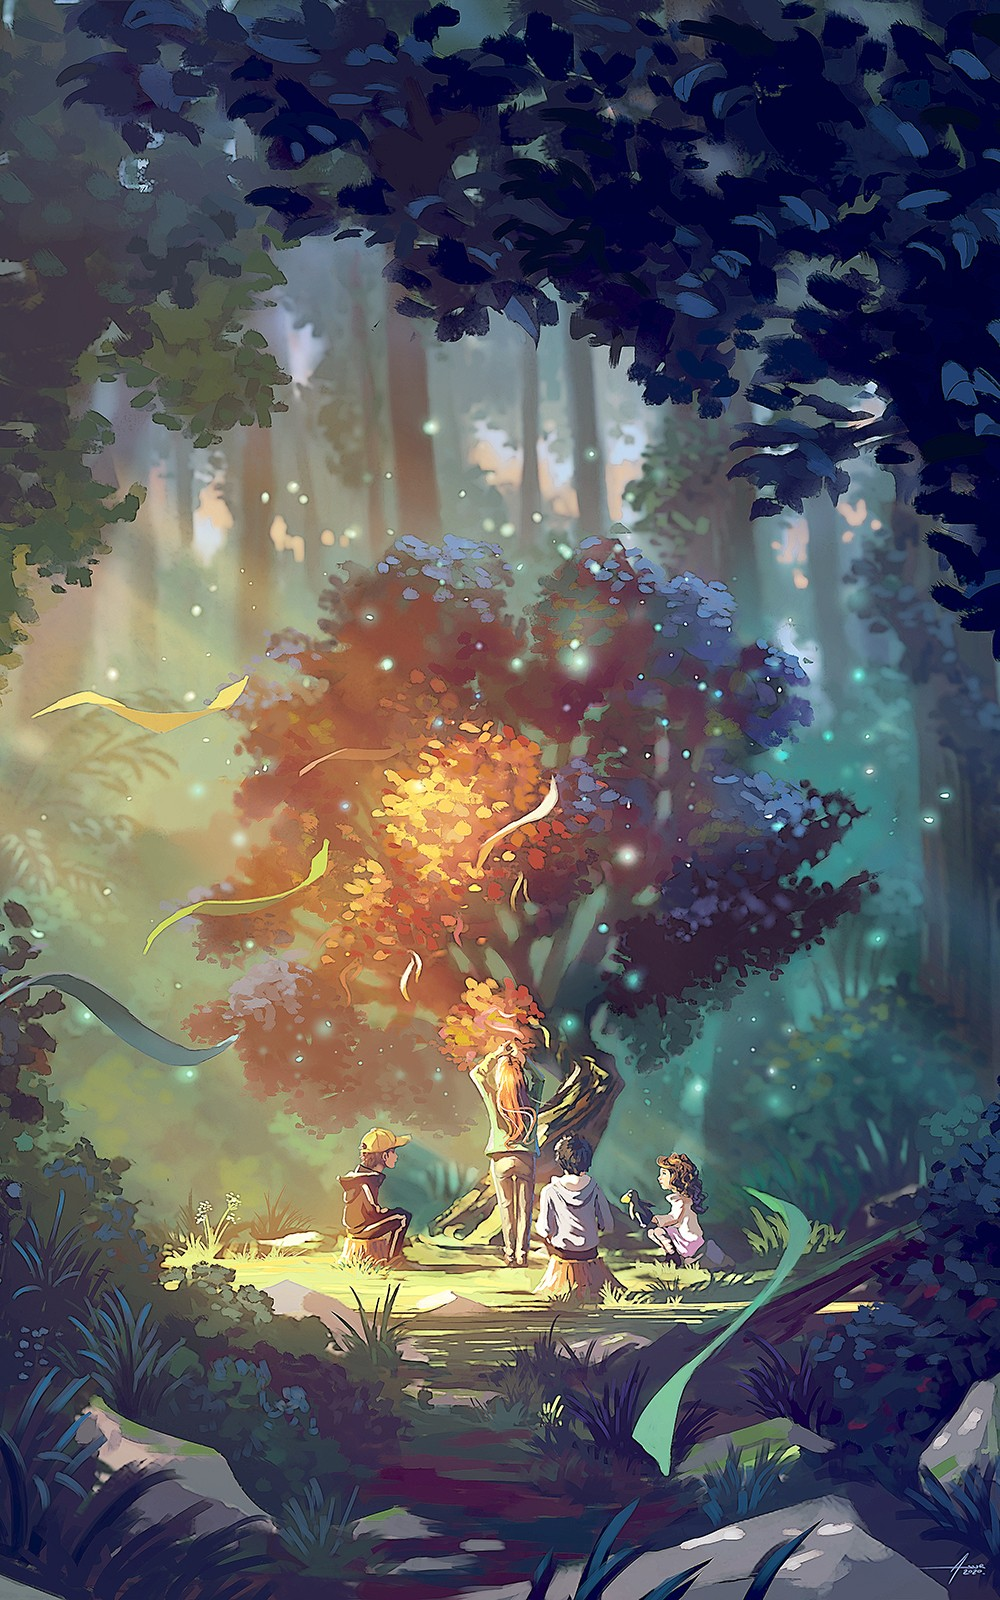 The fairy wish tree par Asur Misoa